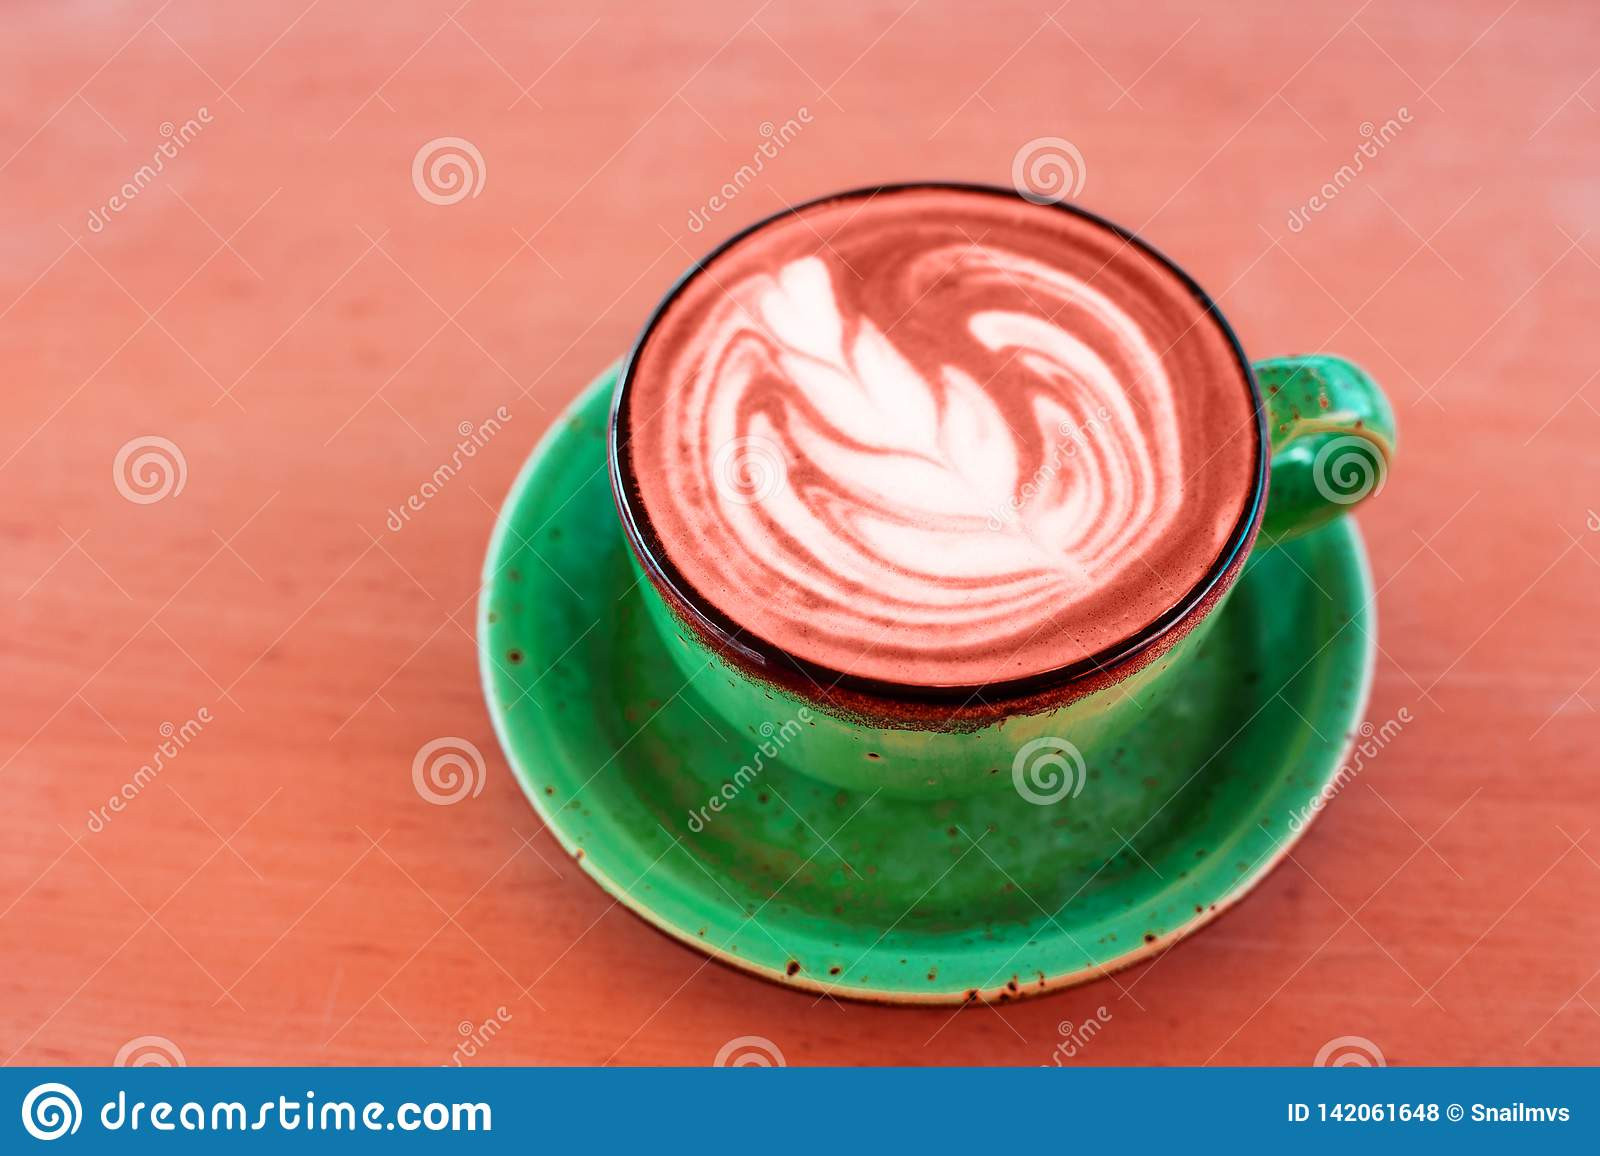 One cup of cappuccino with latte art of Living Coral color on wooden background, greenery ceramic cup, place for text.